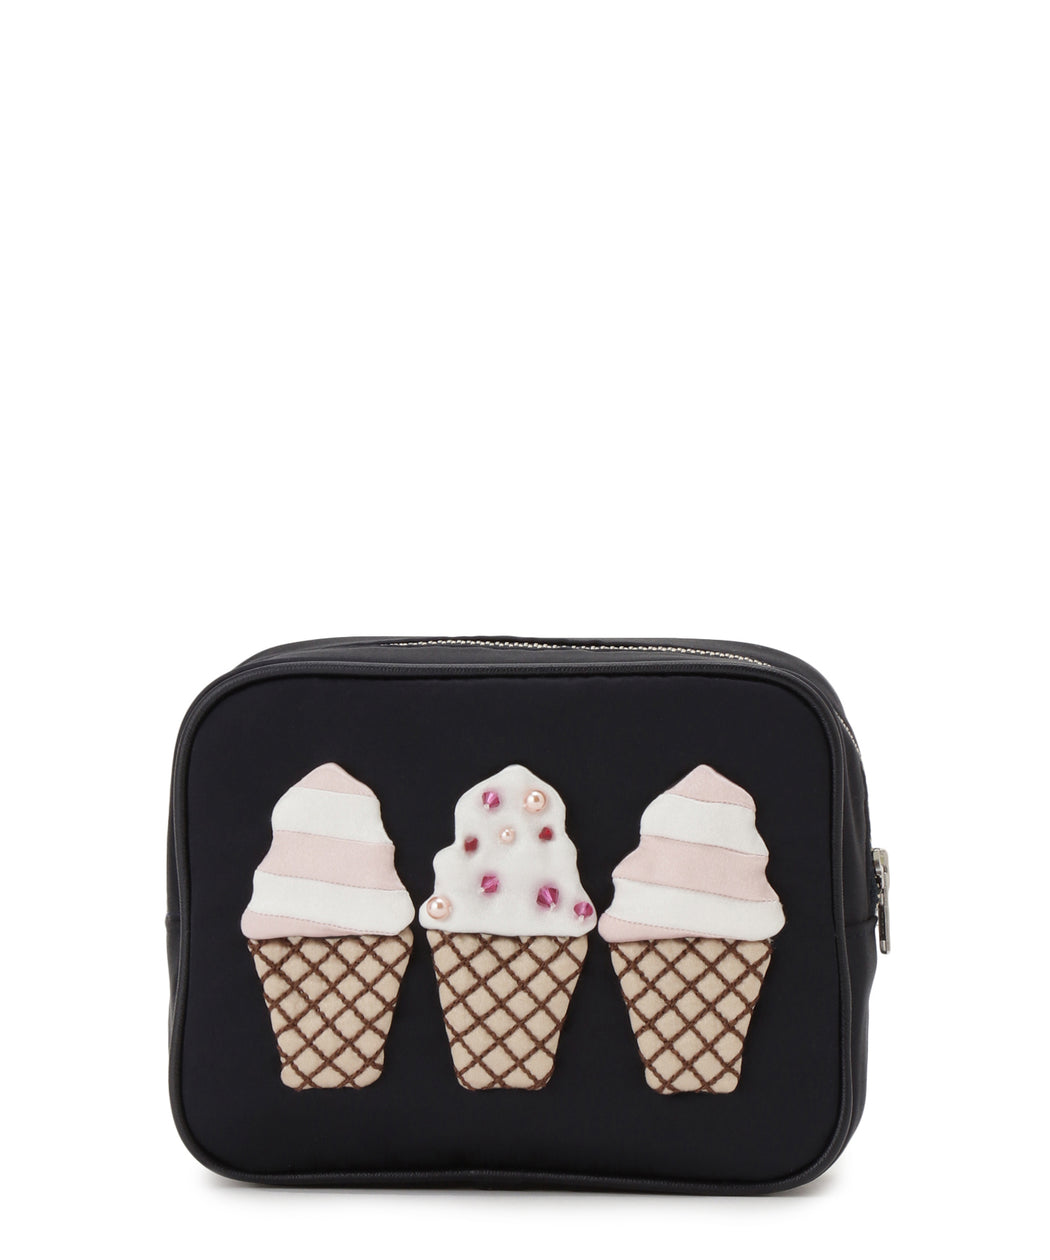 [阪急限定] Pouch with tissue case (ice cream)